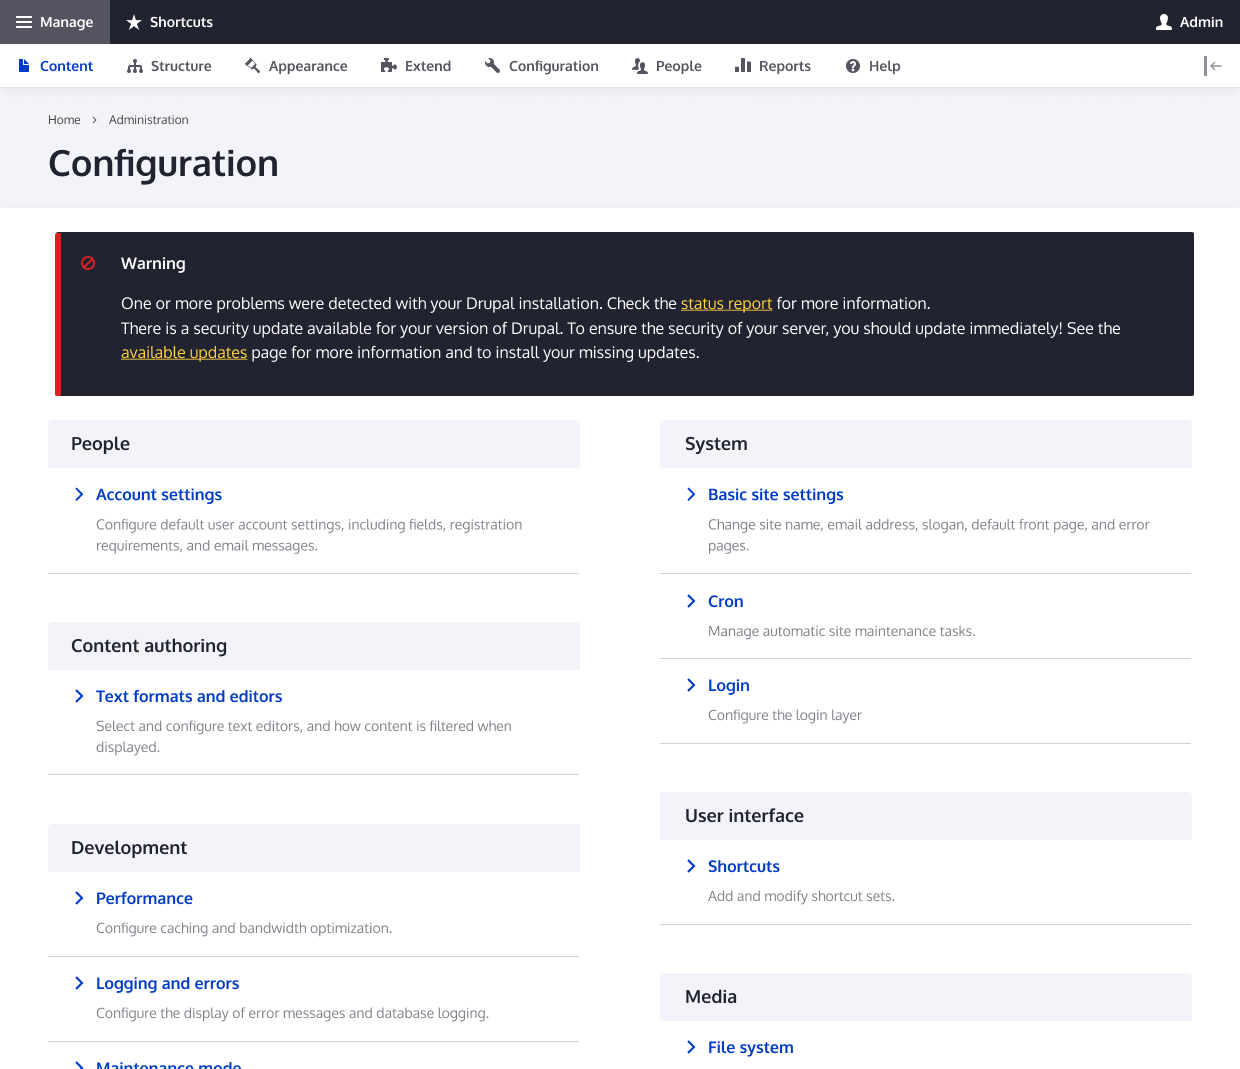 Add Claro administration theme to core [#3079738]   Drupal org